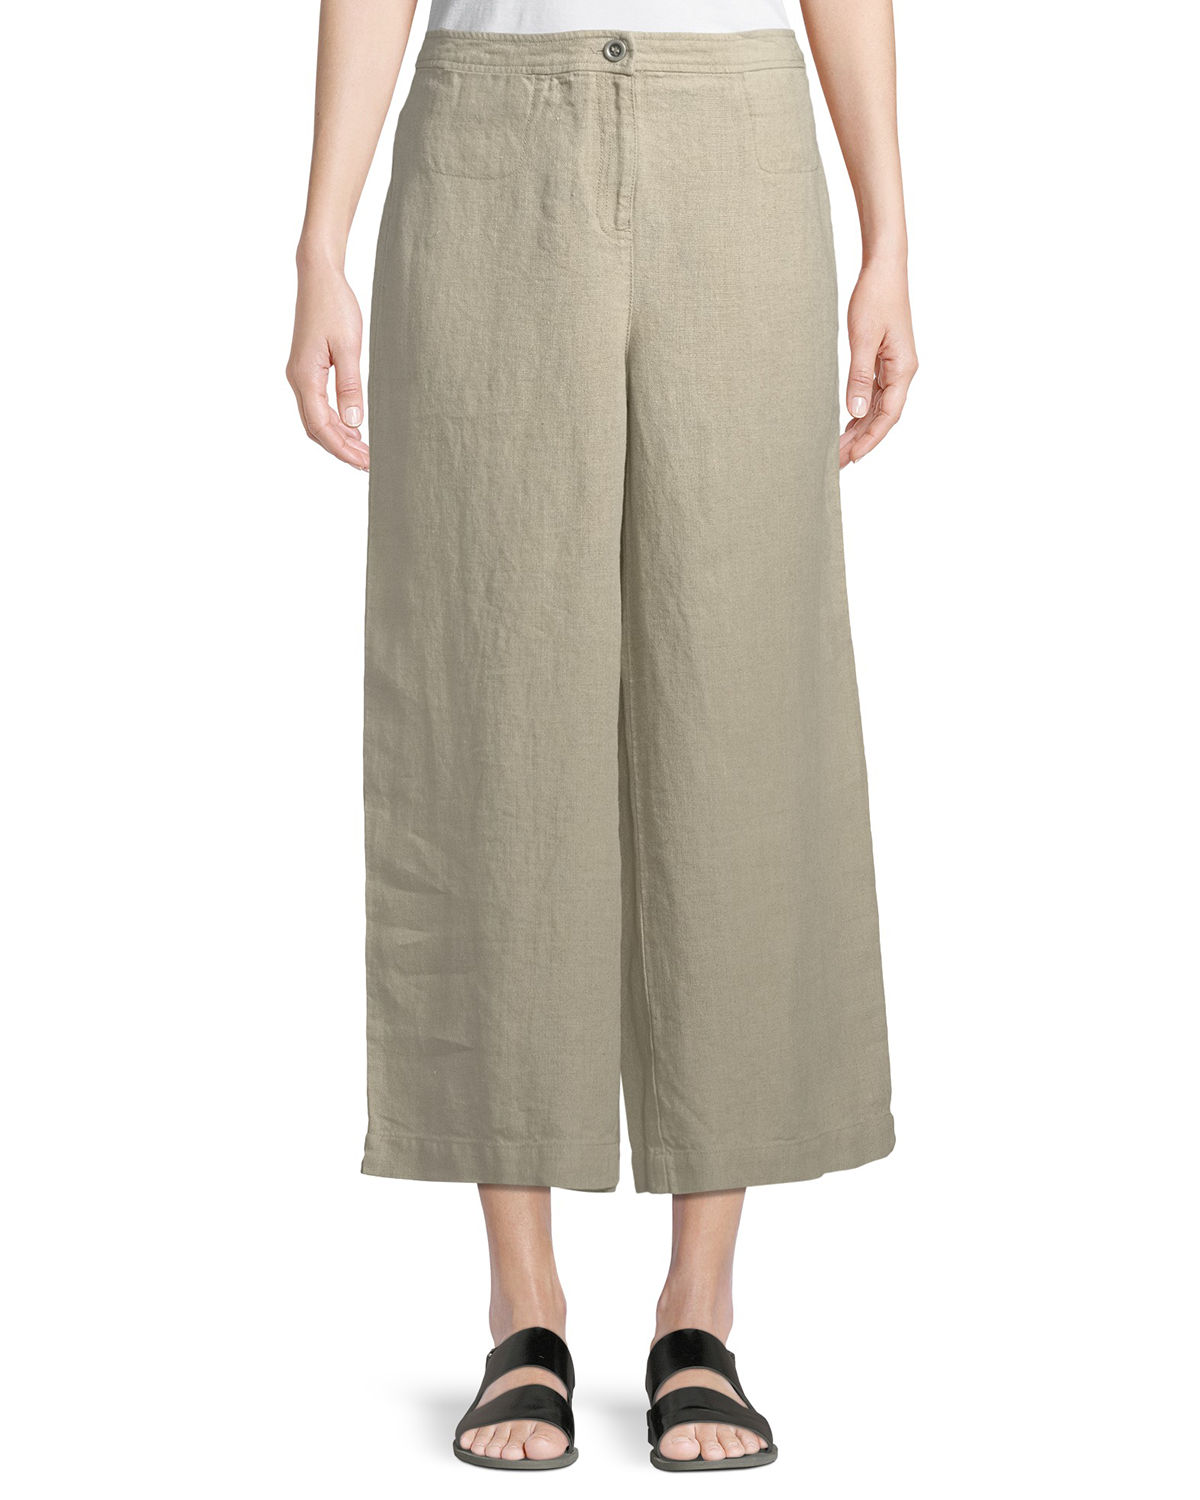 Olivo petite ivory wide leg crop pants teen anal sex